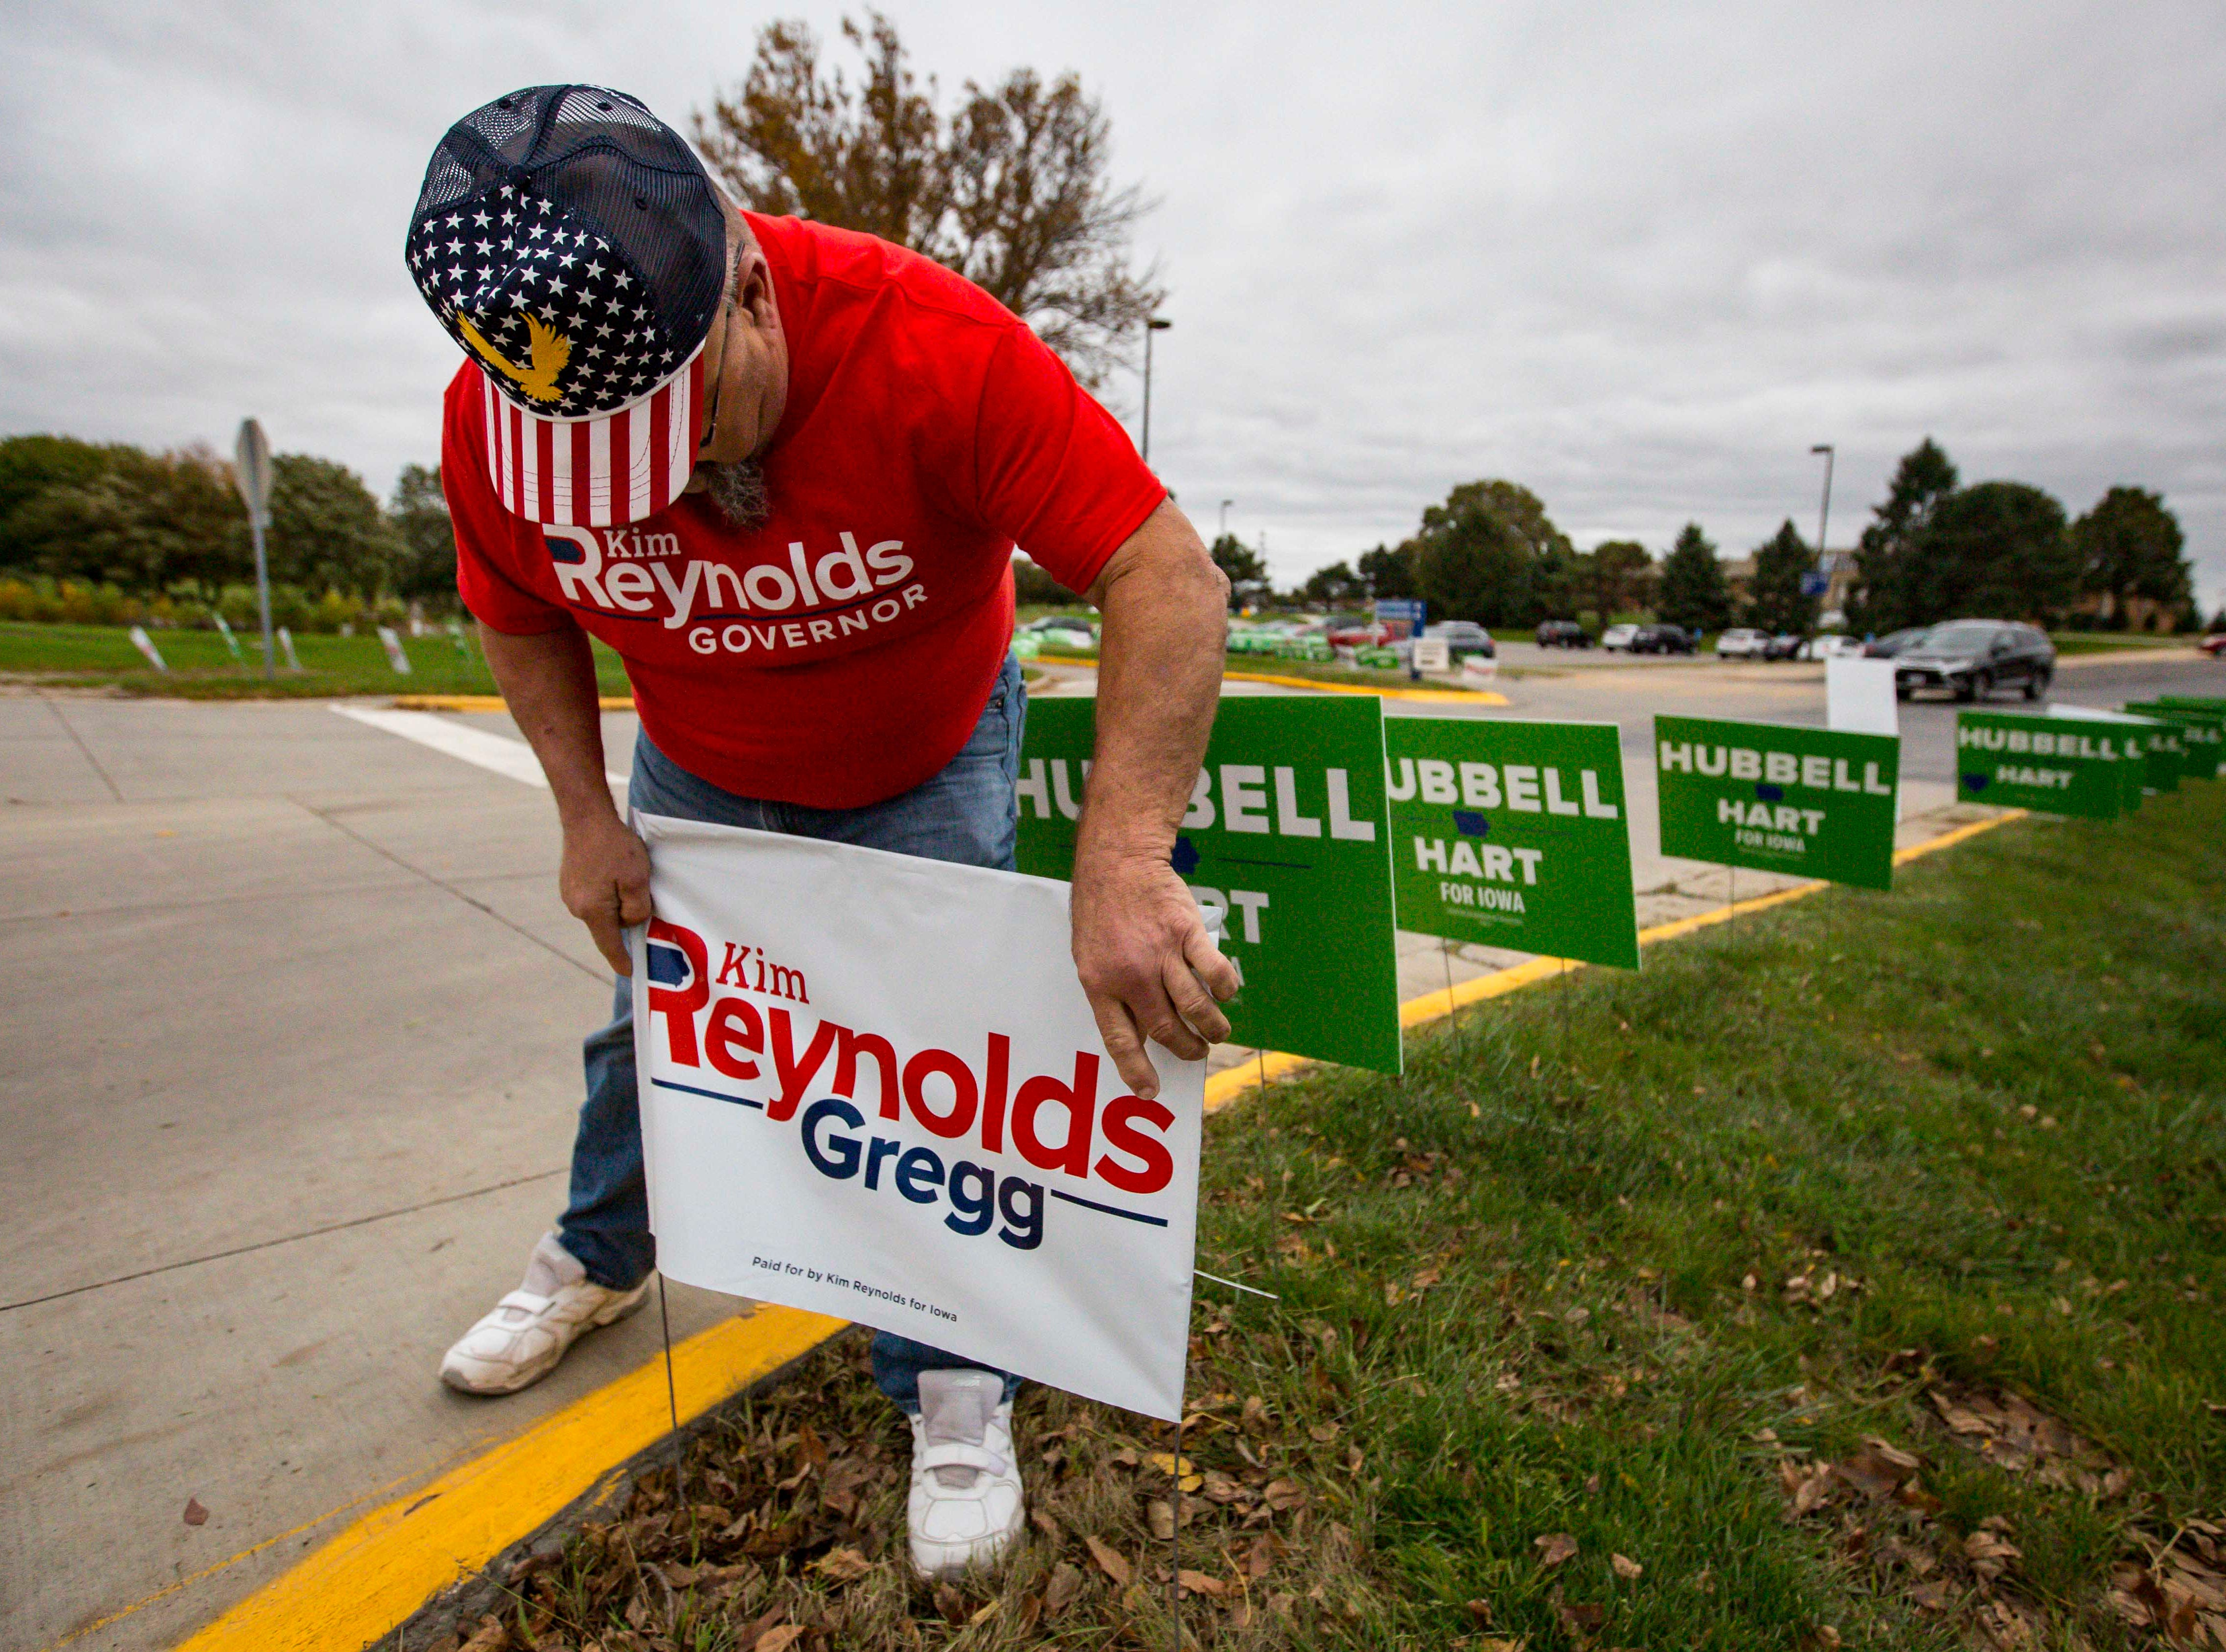 Bykermark Carver places campaign signs for Republican Iowa Gov. Kim Reynolds before a debate with Democratic challenger Fred Hubbell Wednesday, Oct. 10, 2018, at Des Moines Area Community College in Ankeny, Iowa.